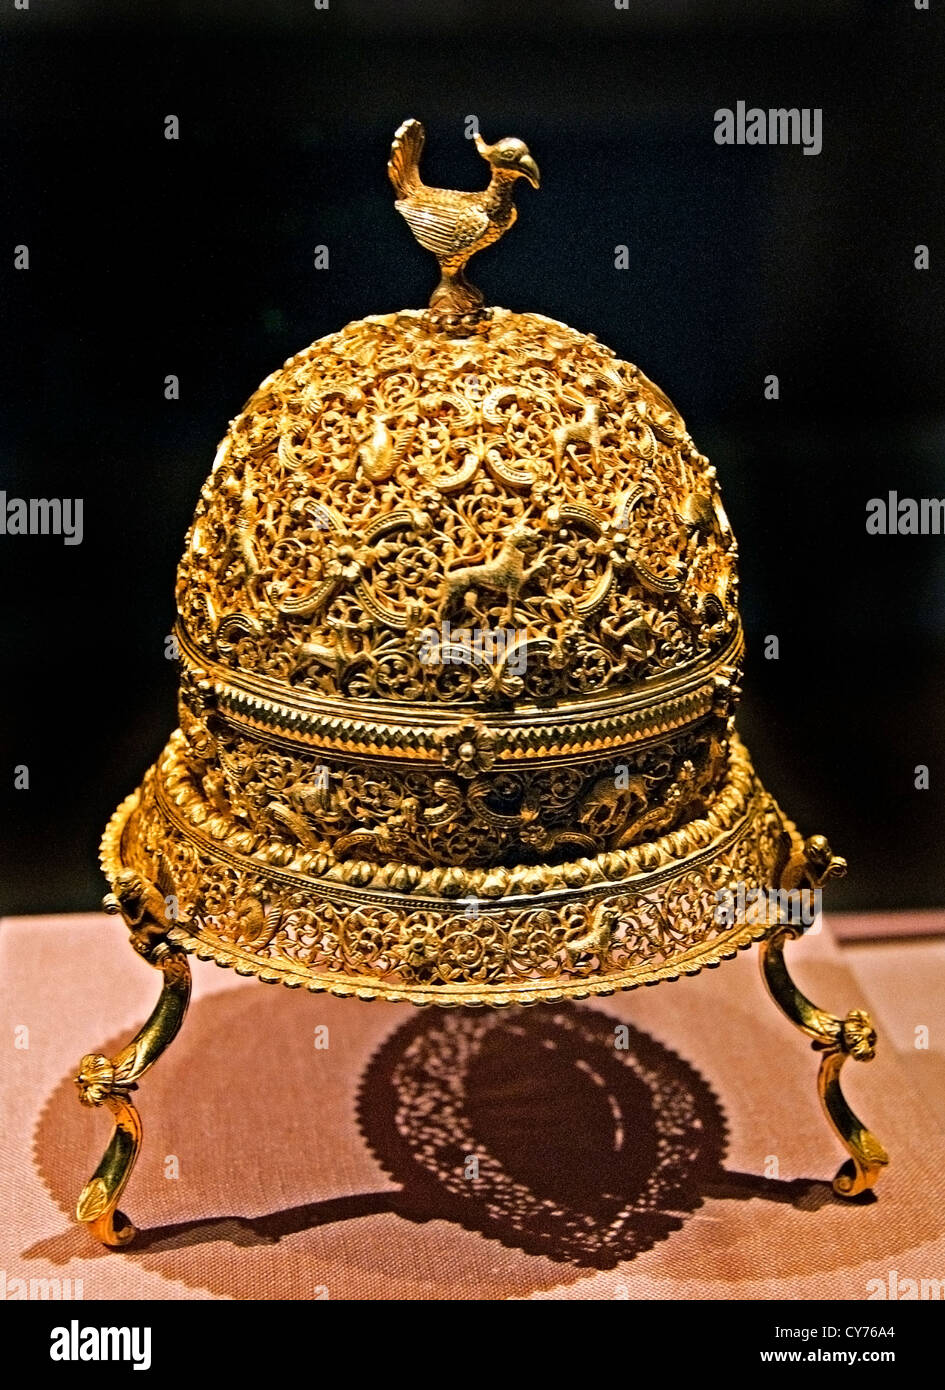 Goa Stone and Gold Case late 17th–early 18th century  India gold container pierced repoussé with cast legs and finials Stock Photo